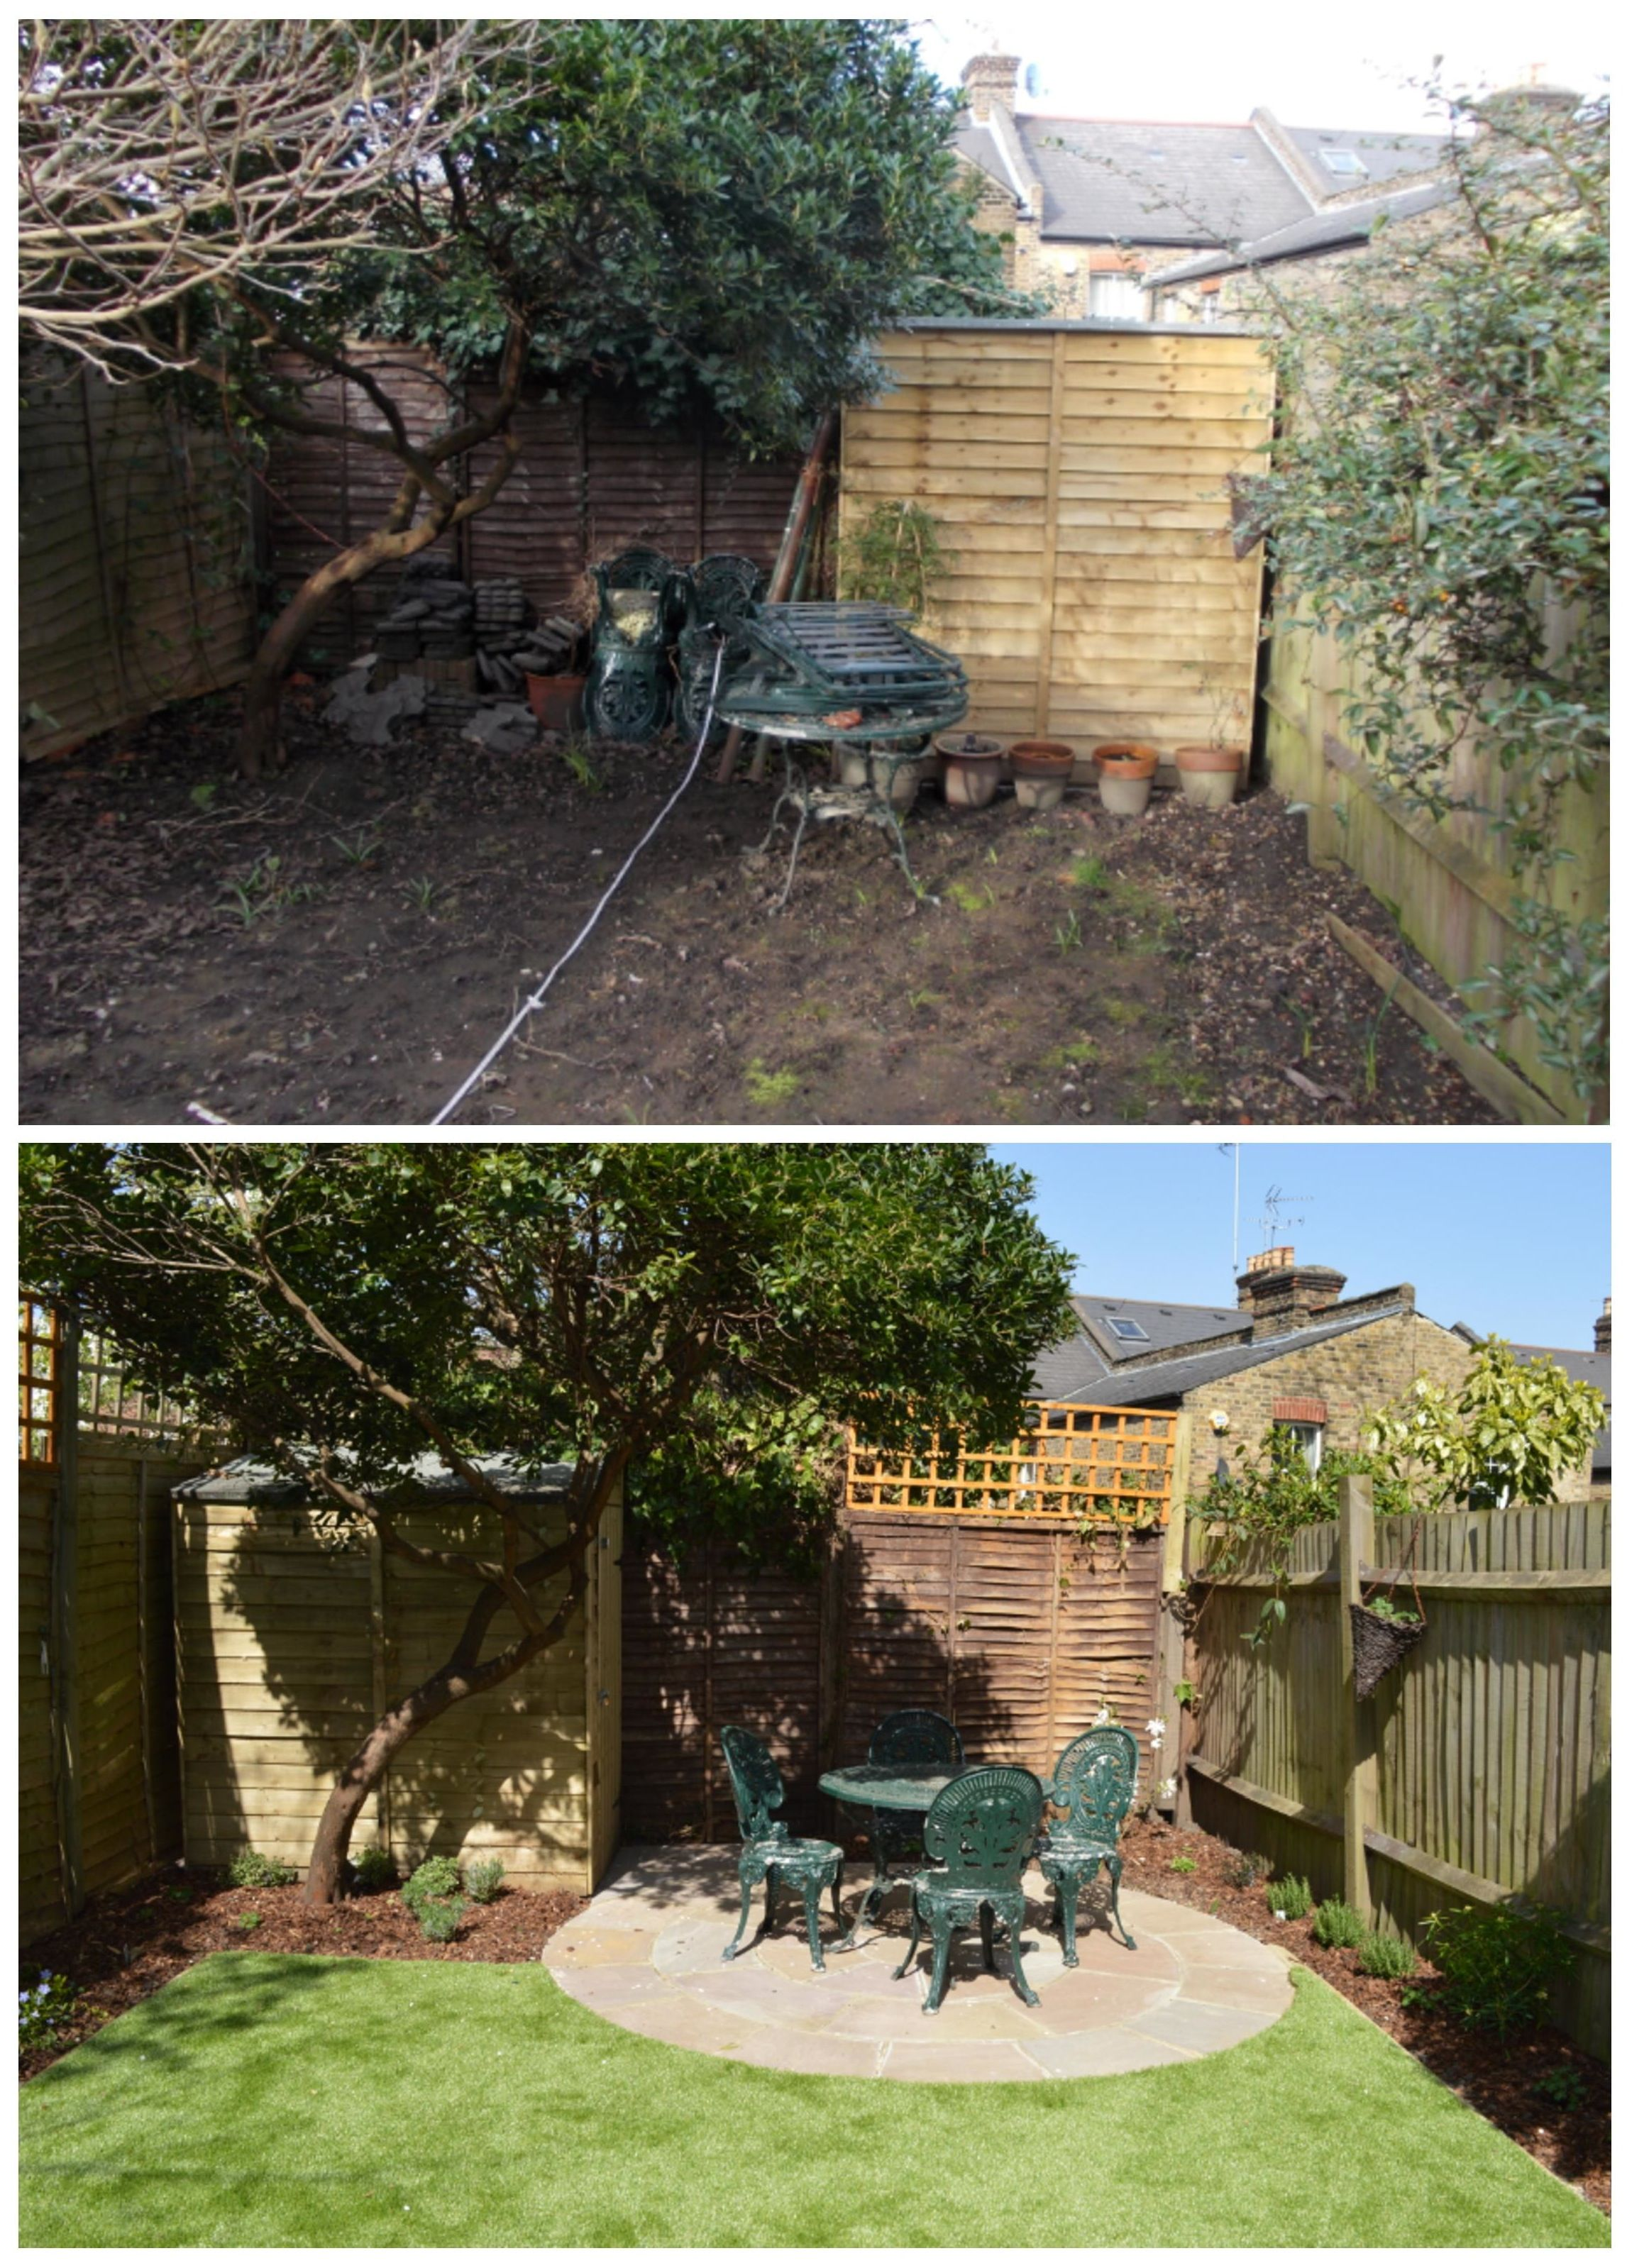 1cfacc883710ccc7942fce249c7ee9ea - Before And After Pictures Of Gardens